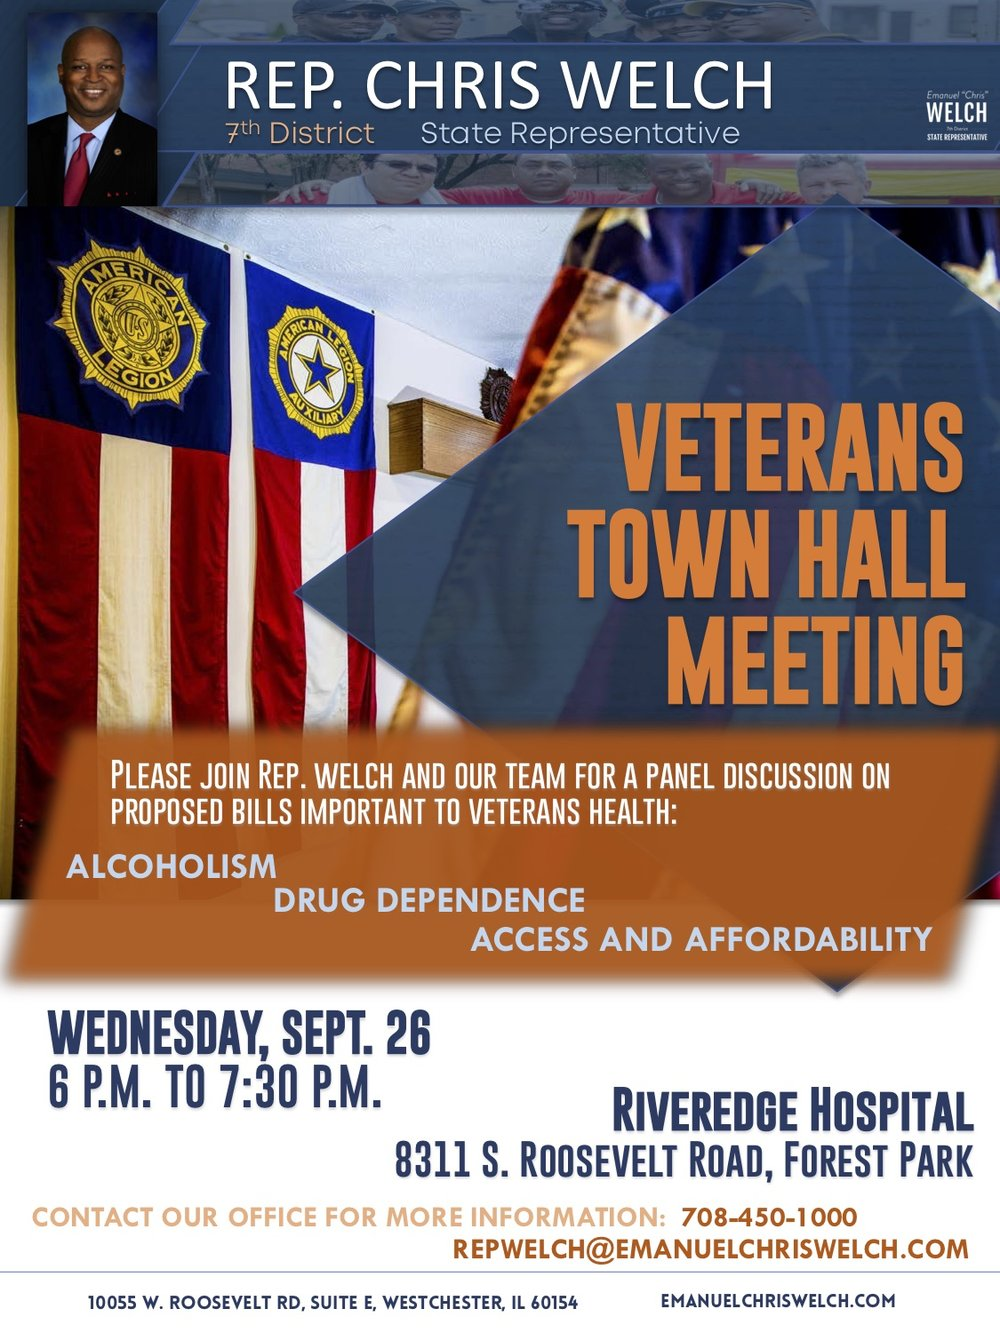 Rep. Welch veterans town hall flyer July 2018.jpg